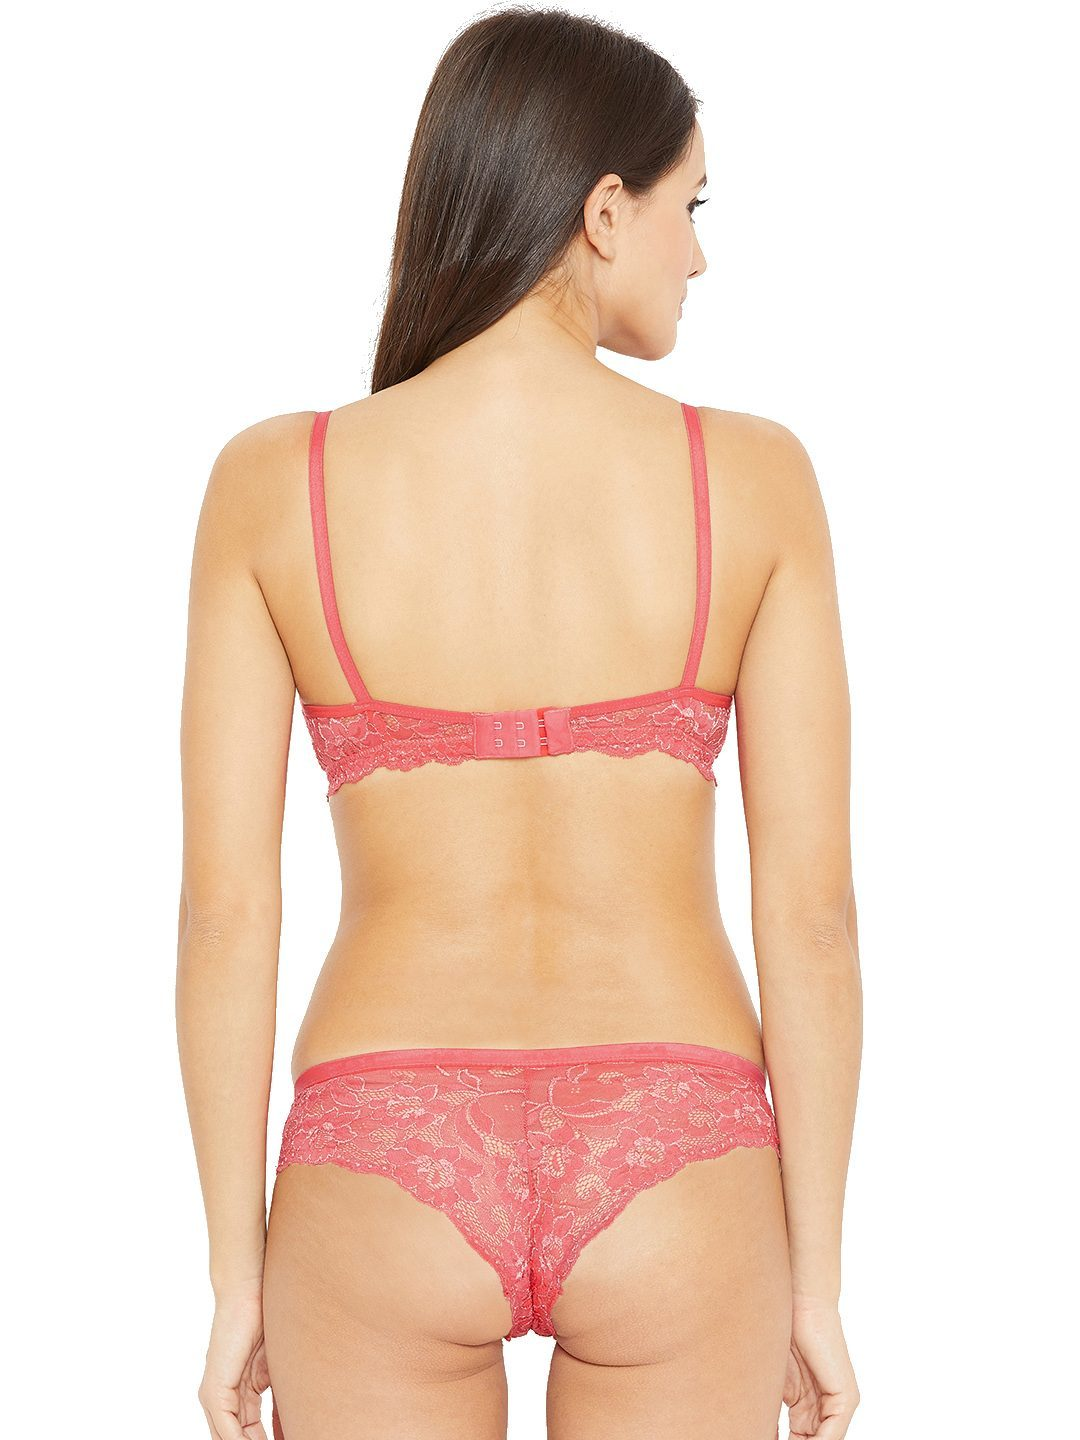 Non Padded Wire free Lace Design Bra & Hipster Panty Lingerie Set